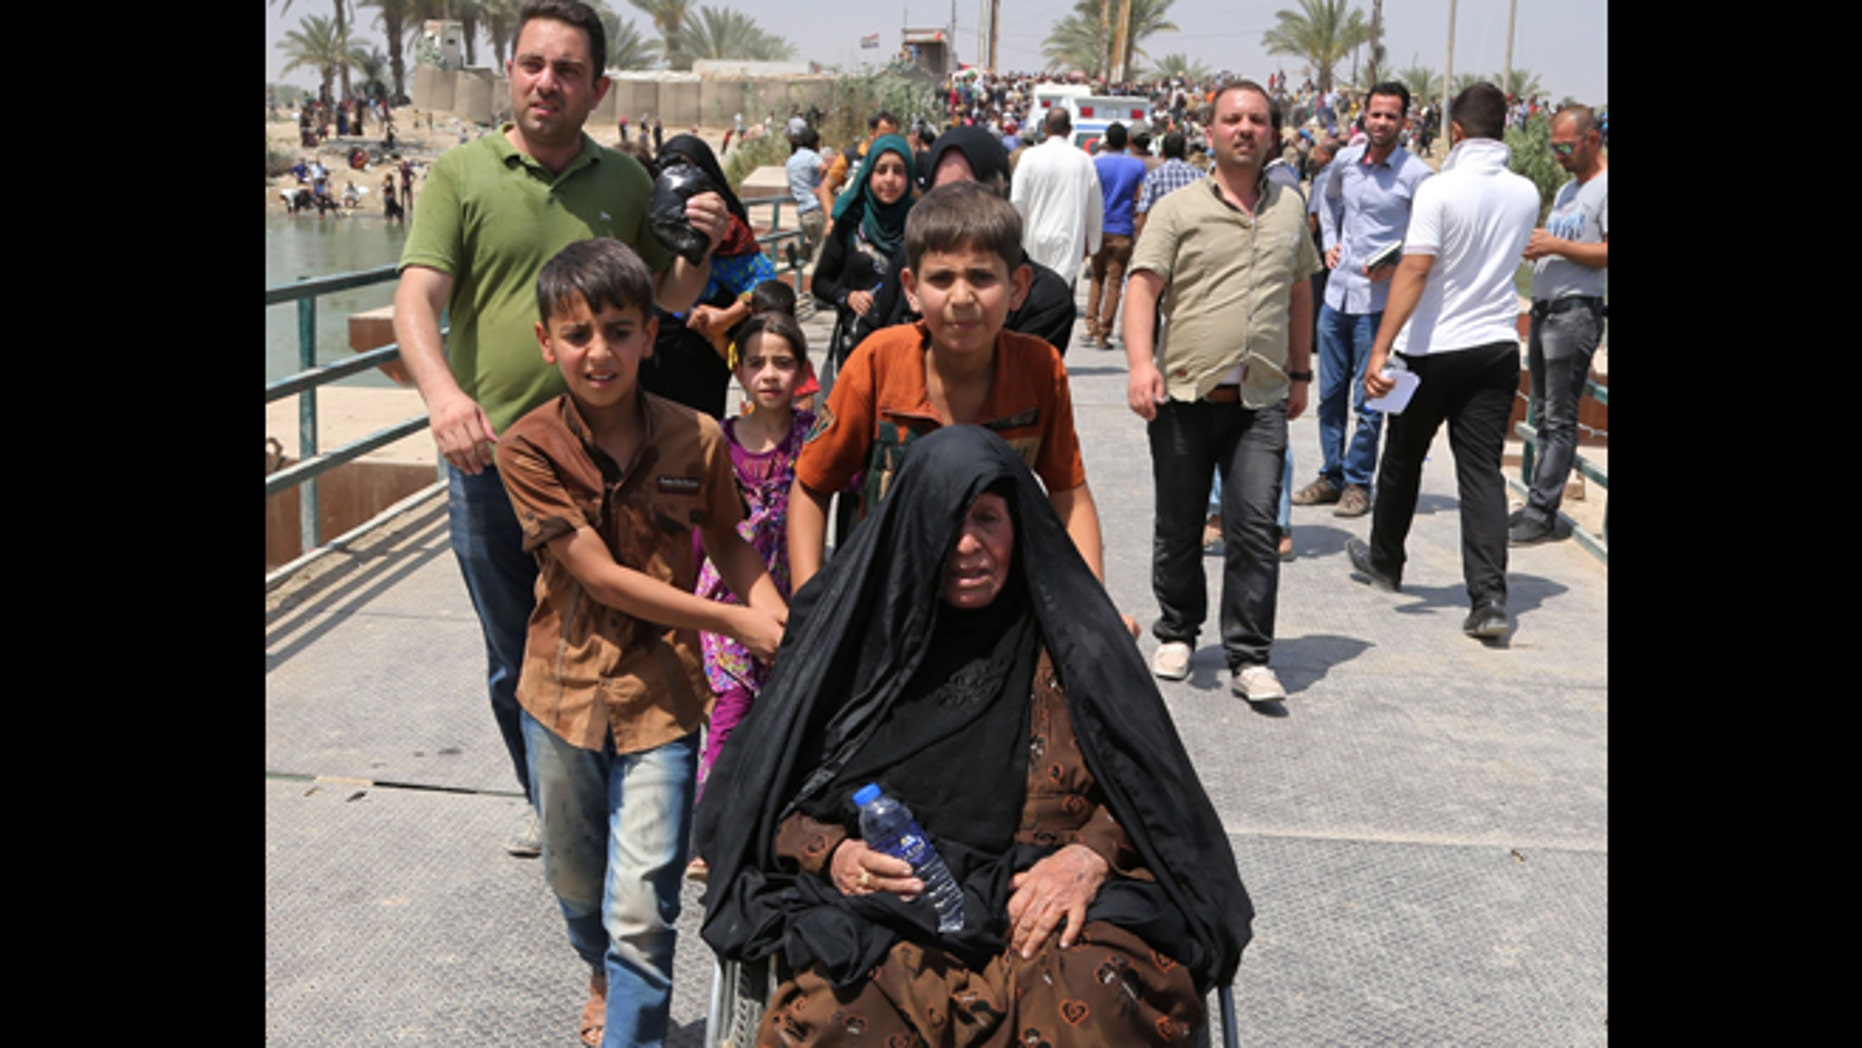 May 20, 2015: Thousands of displaced people fleeing violence in Ramadi poured into Baghdad province on Wednesday after central government granted them conditional entry, said a provincial official.